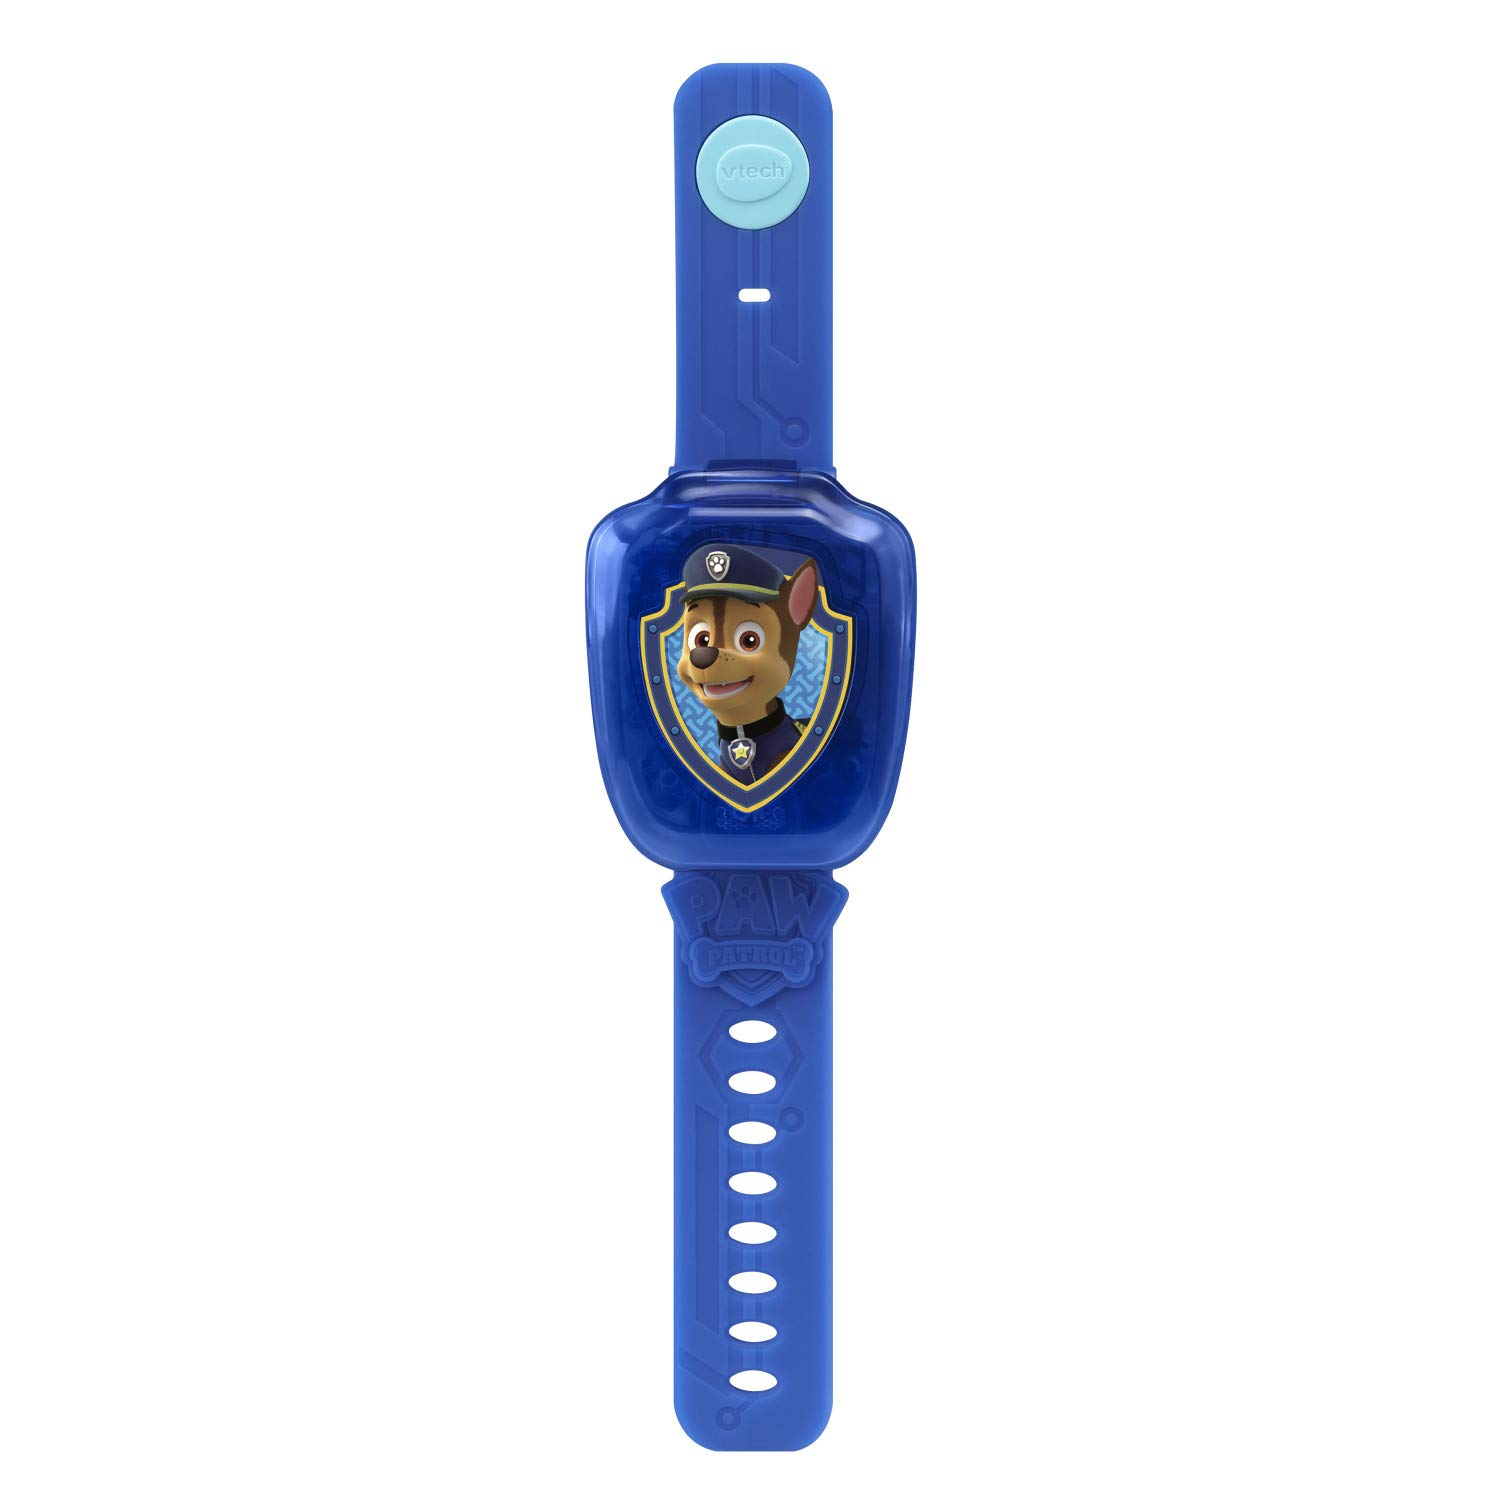 VTech Paw Patrol Chase Learning Watch, Blue by VTech (Image #3)